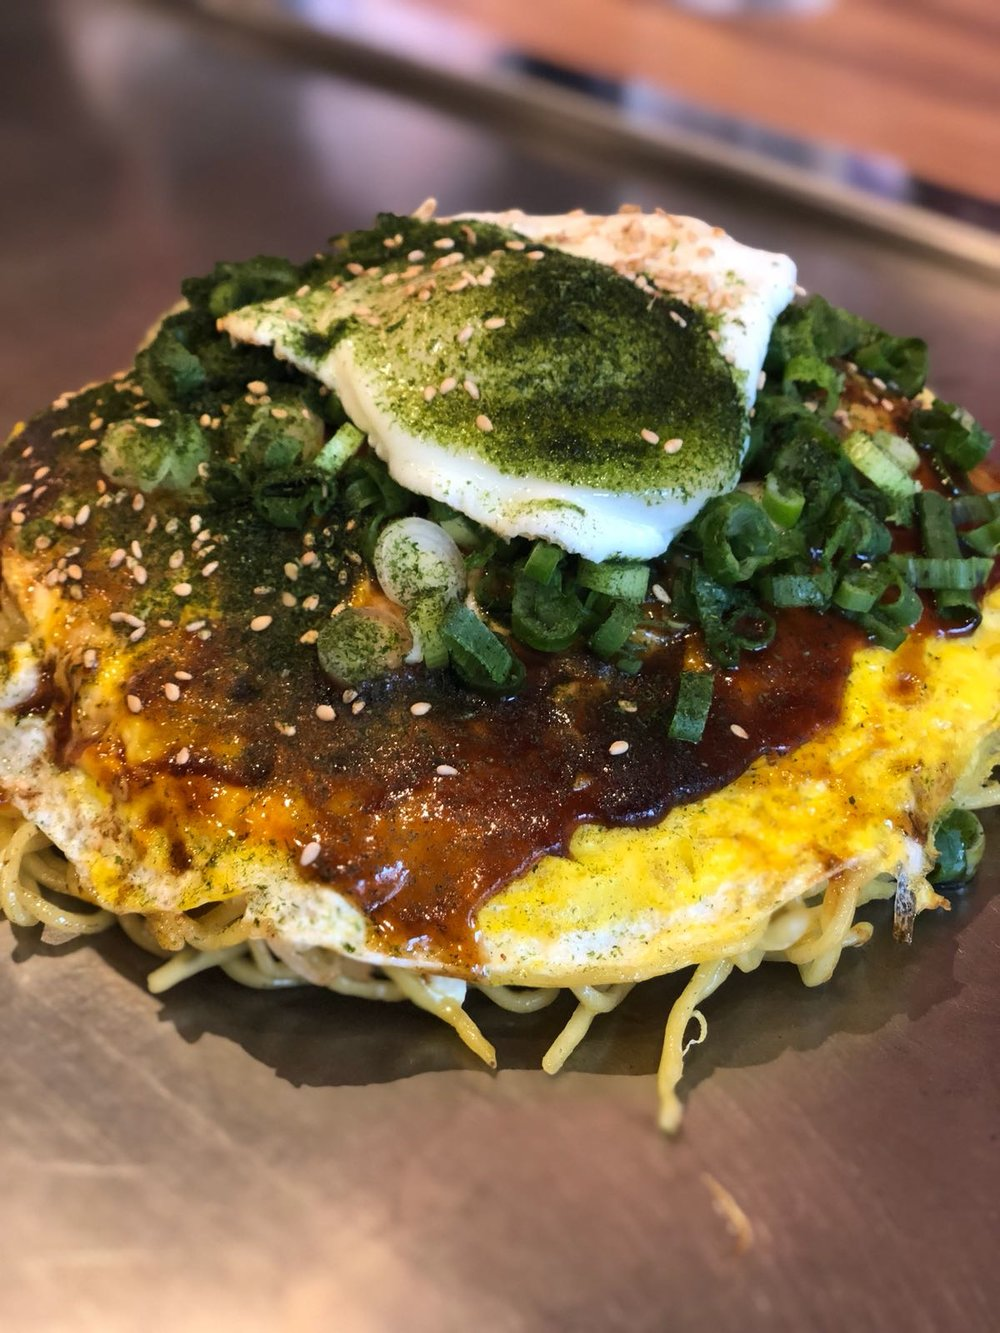 The B&C (basil and cheese) okonomiyaki with an egg from Chinchikurin.